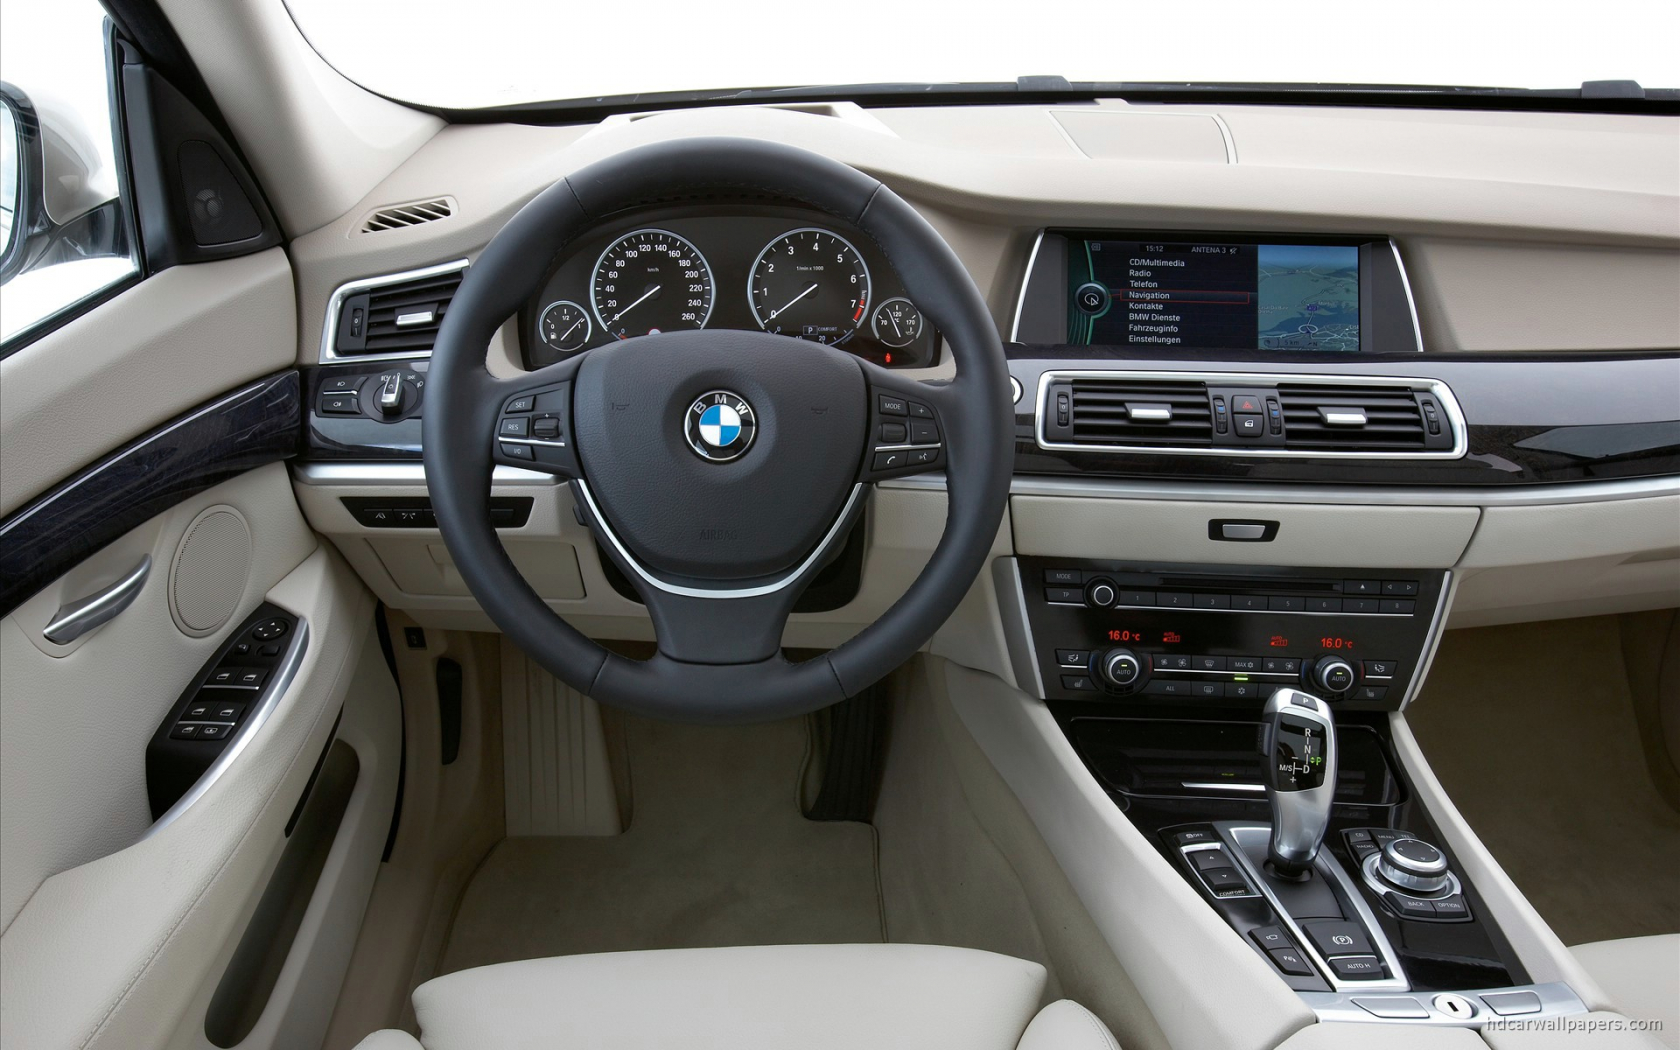 Free Download 2010 Bmw 5 Series Gran Turismo Interiorrelated Car Wallpapers 1920x1200 For Your Desktop Mobile Tablet Explore 51 Wallpaper In Springfield Mo Discount Wallpaper Springfield Mo Wallpaper World